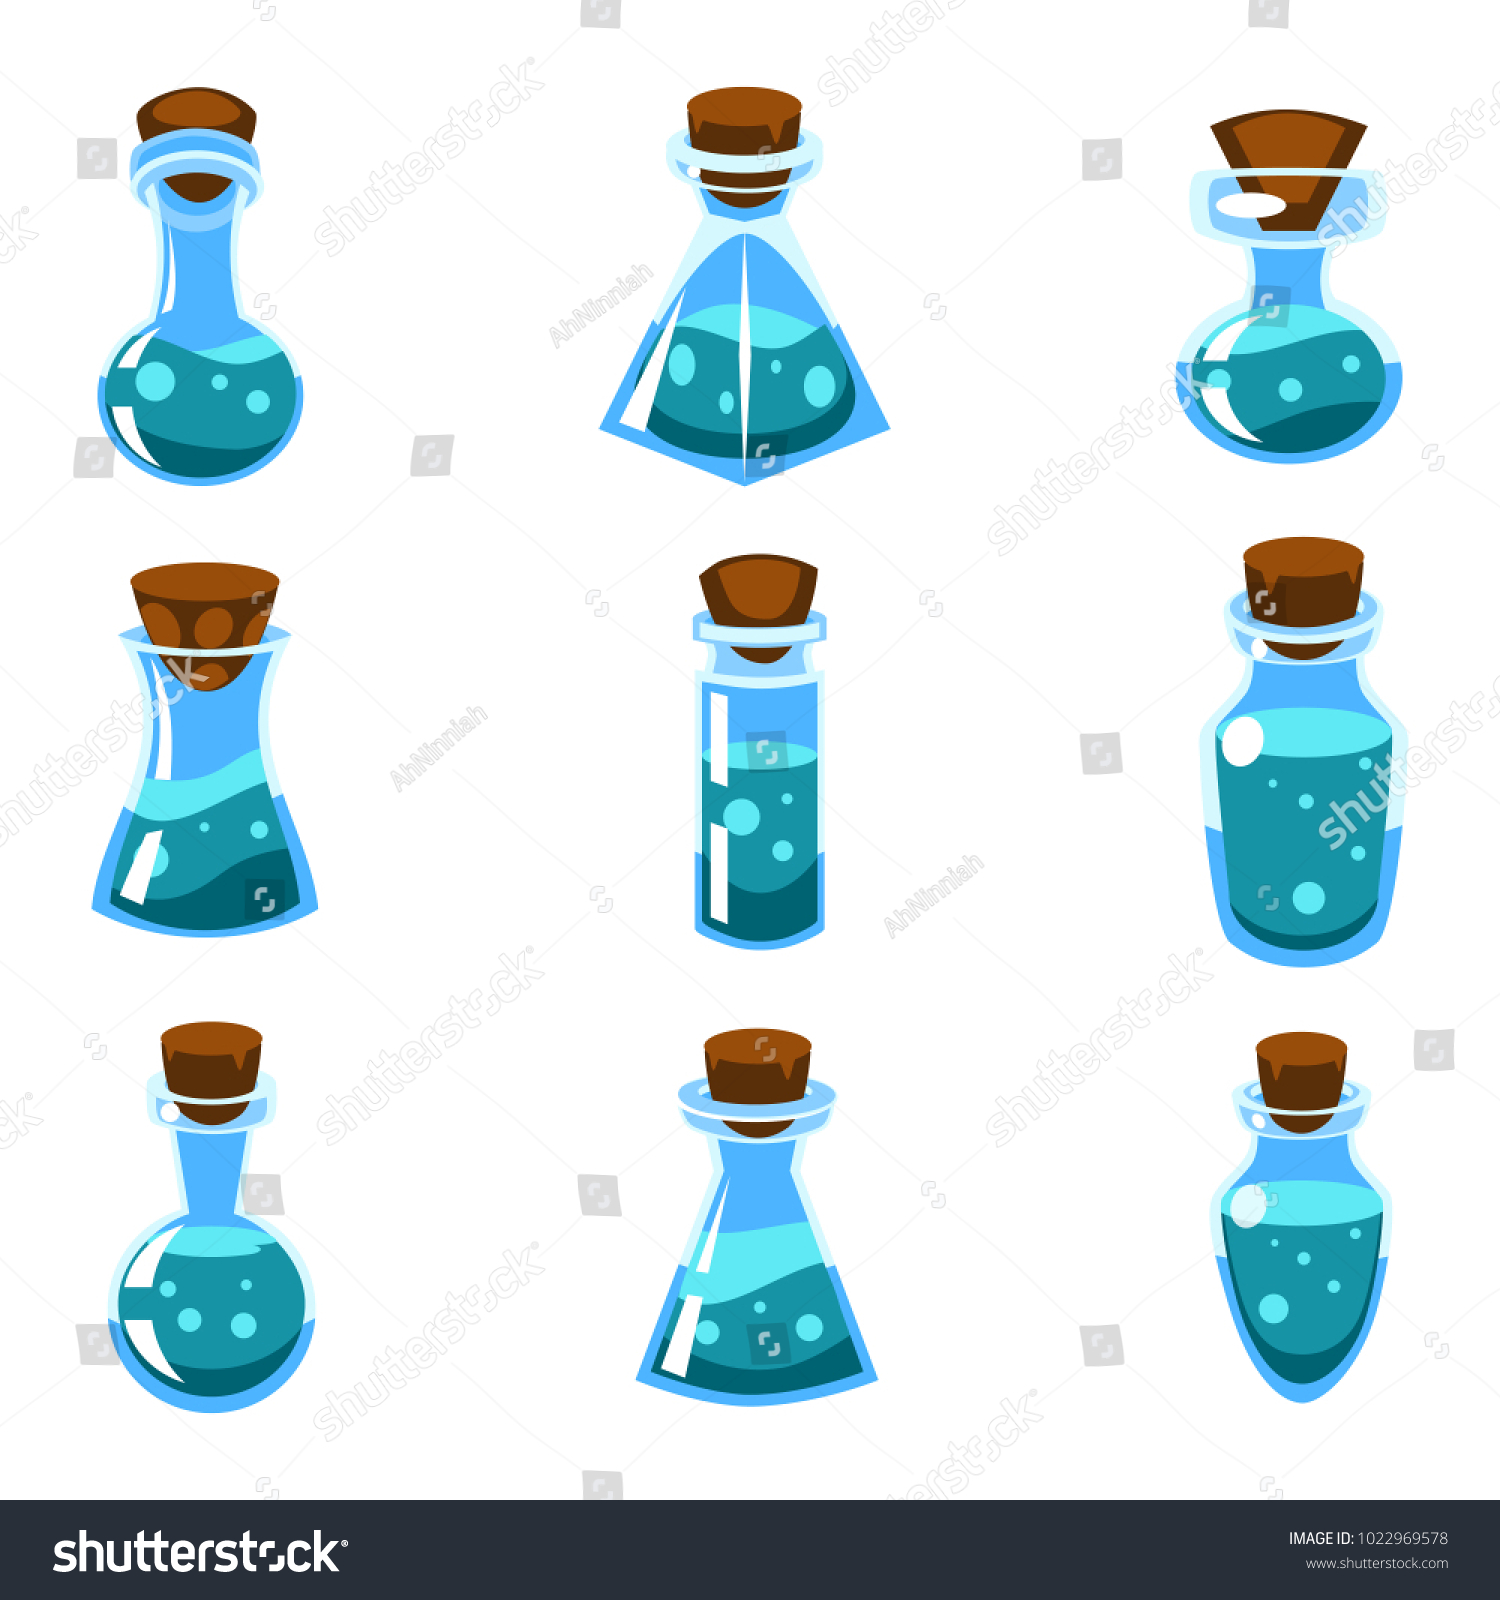 Set of cartoon vector blue potions in bottles of different shape for a game